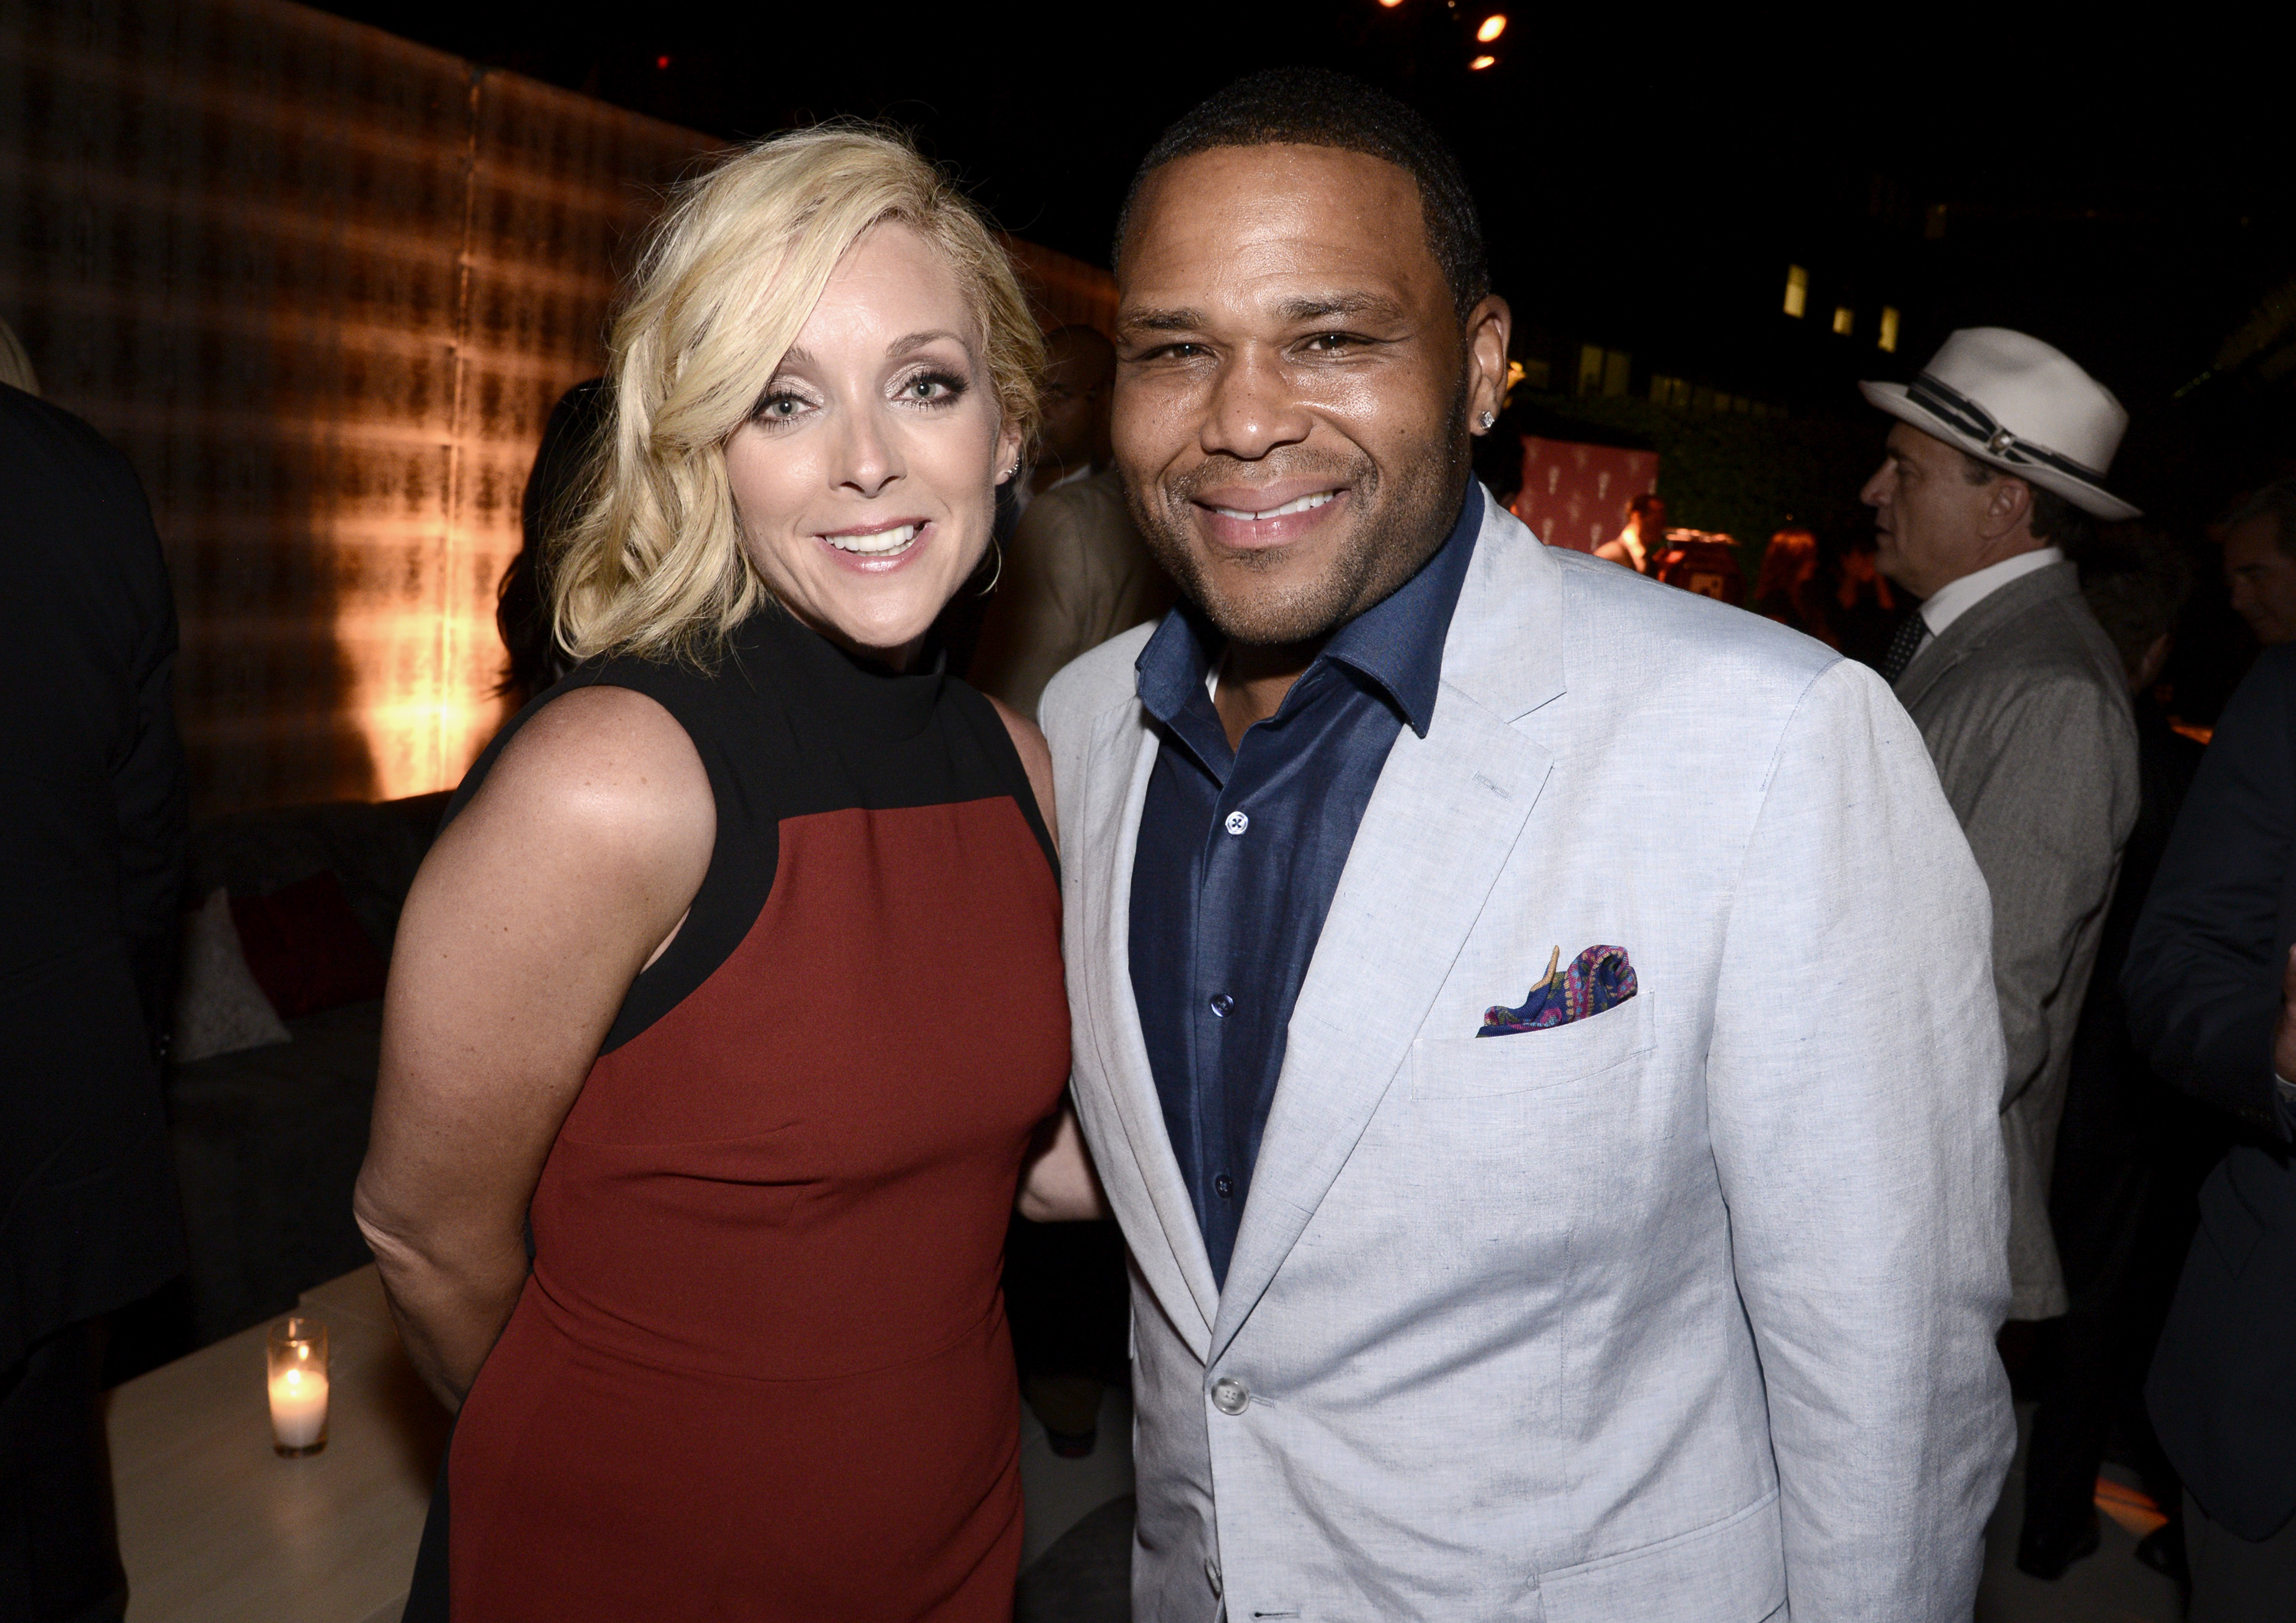 EXCLUSIVE - Jane Krakowski, left, and Anthony Anderson attend the Television Academy's 67th Emmy Awards Performers Nominee Reception at the Pacific Design Center on Saturday, Sept.19, 2015, in West Hollywood, Calif. (Photo by Dan Steinberg/Invision for the Television Academy/AP Images)